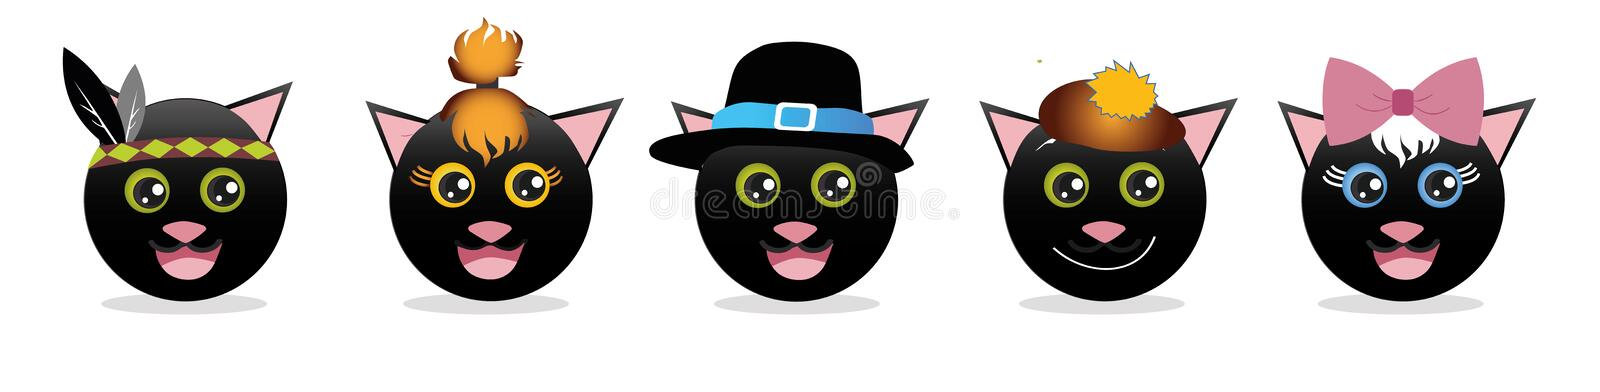 A set of graphic emoticons - cats. Emoji collection. Smile icons. royalty free illustration